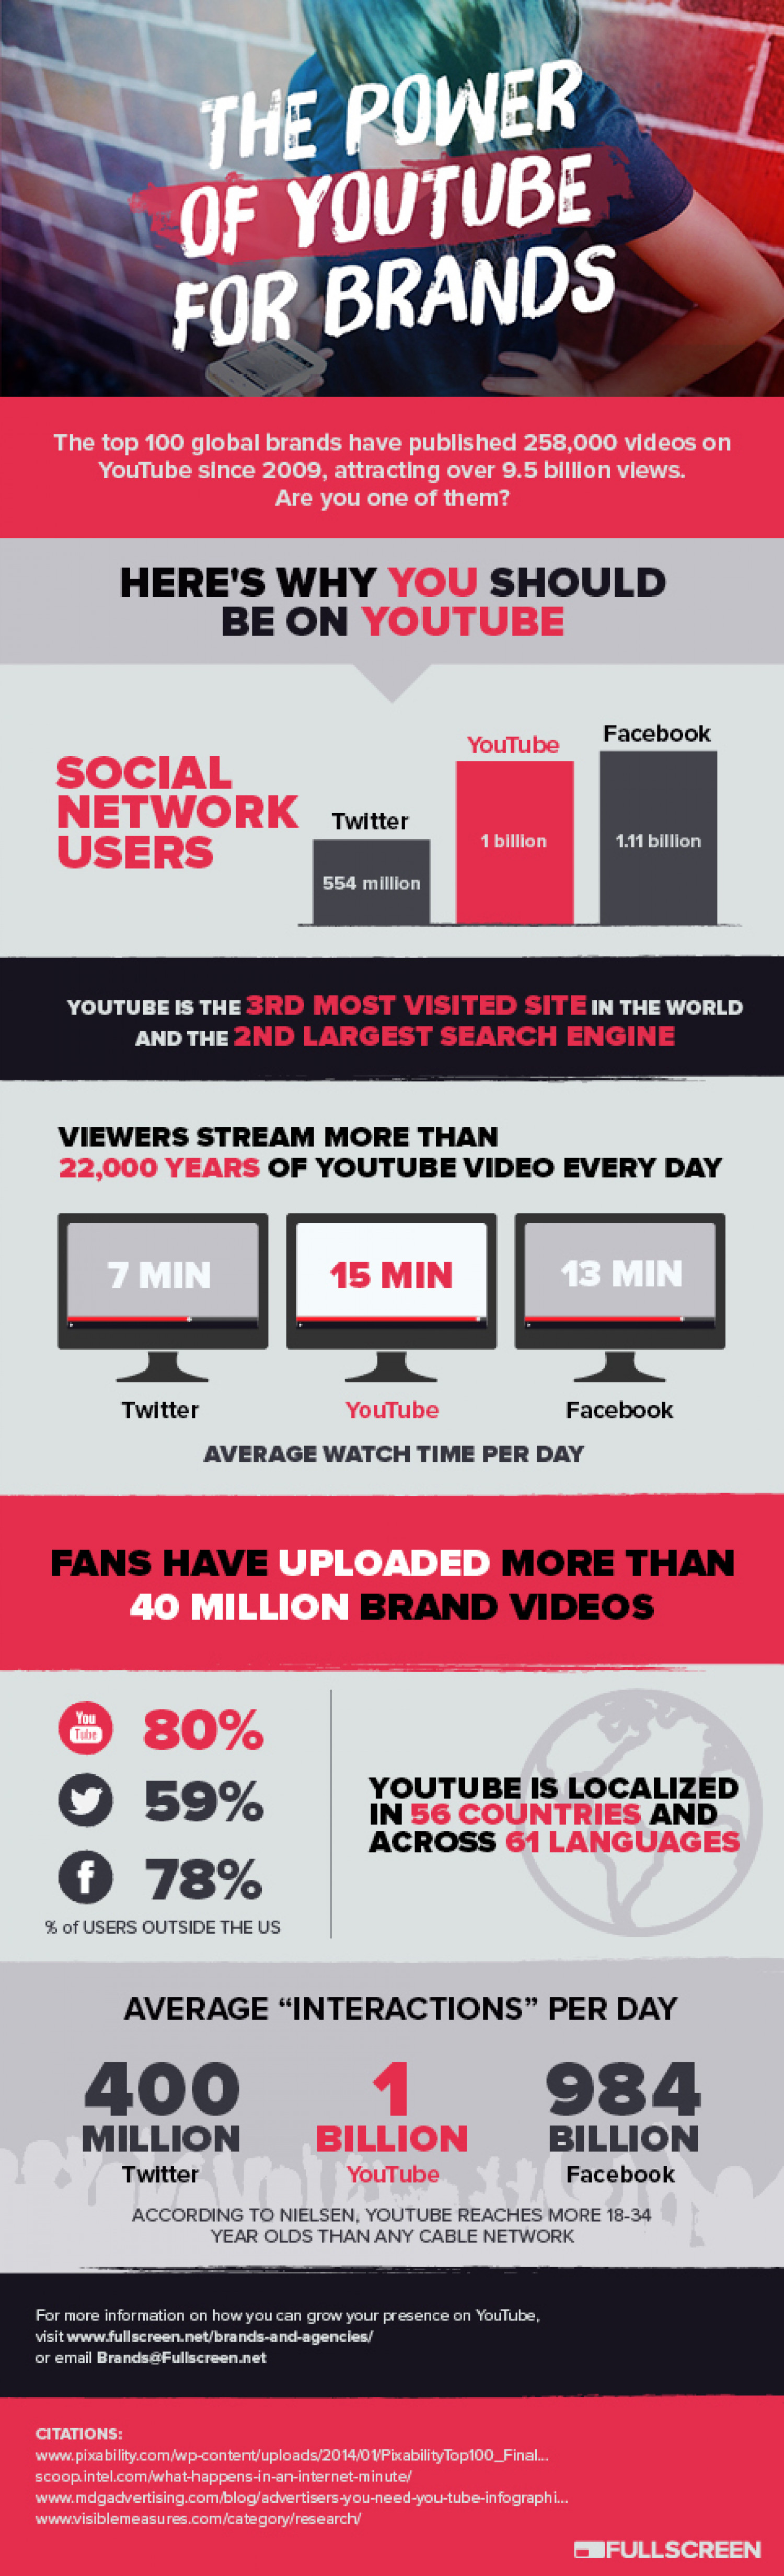 The Power of YouTube for Brands Infographic